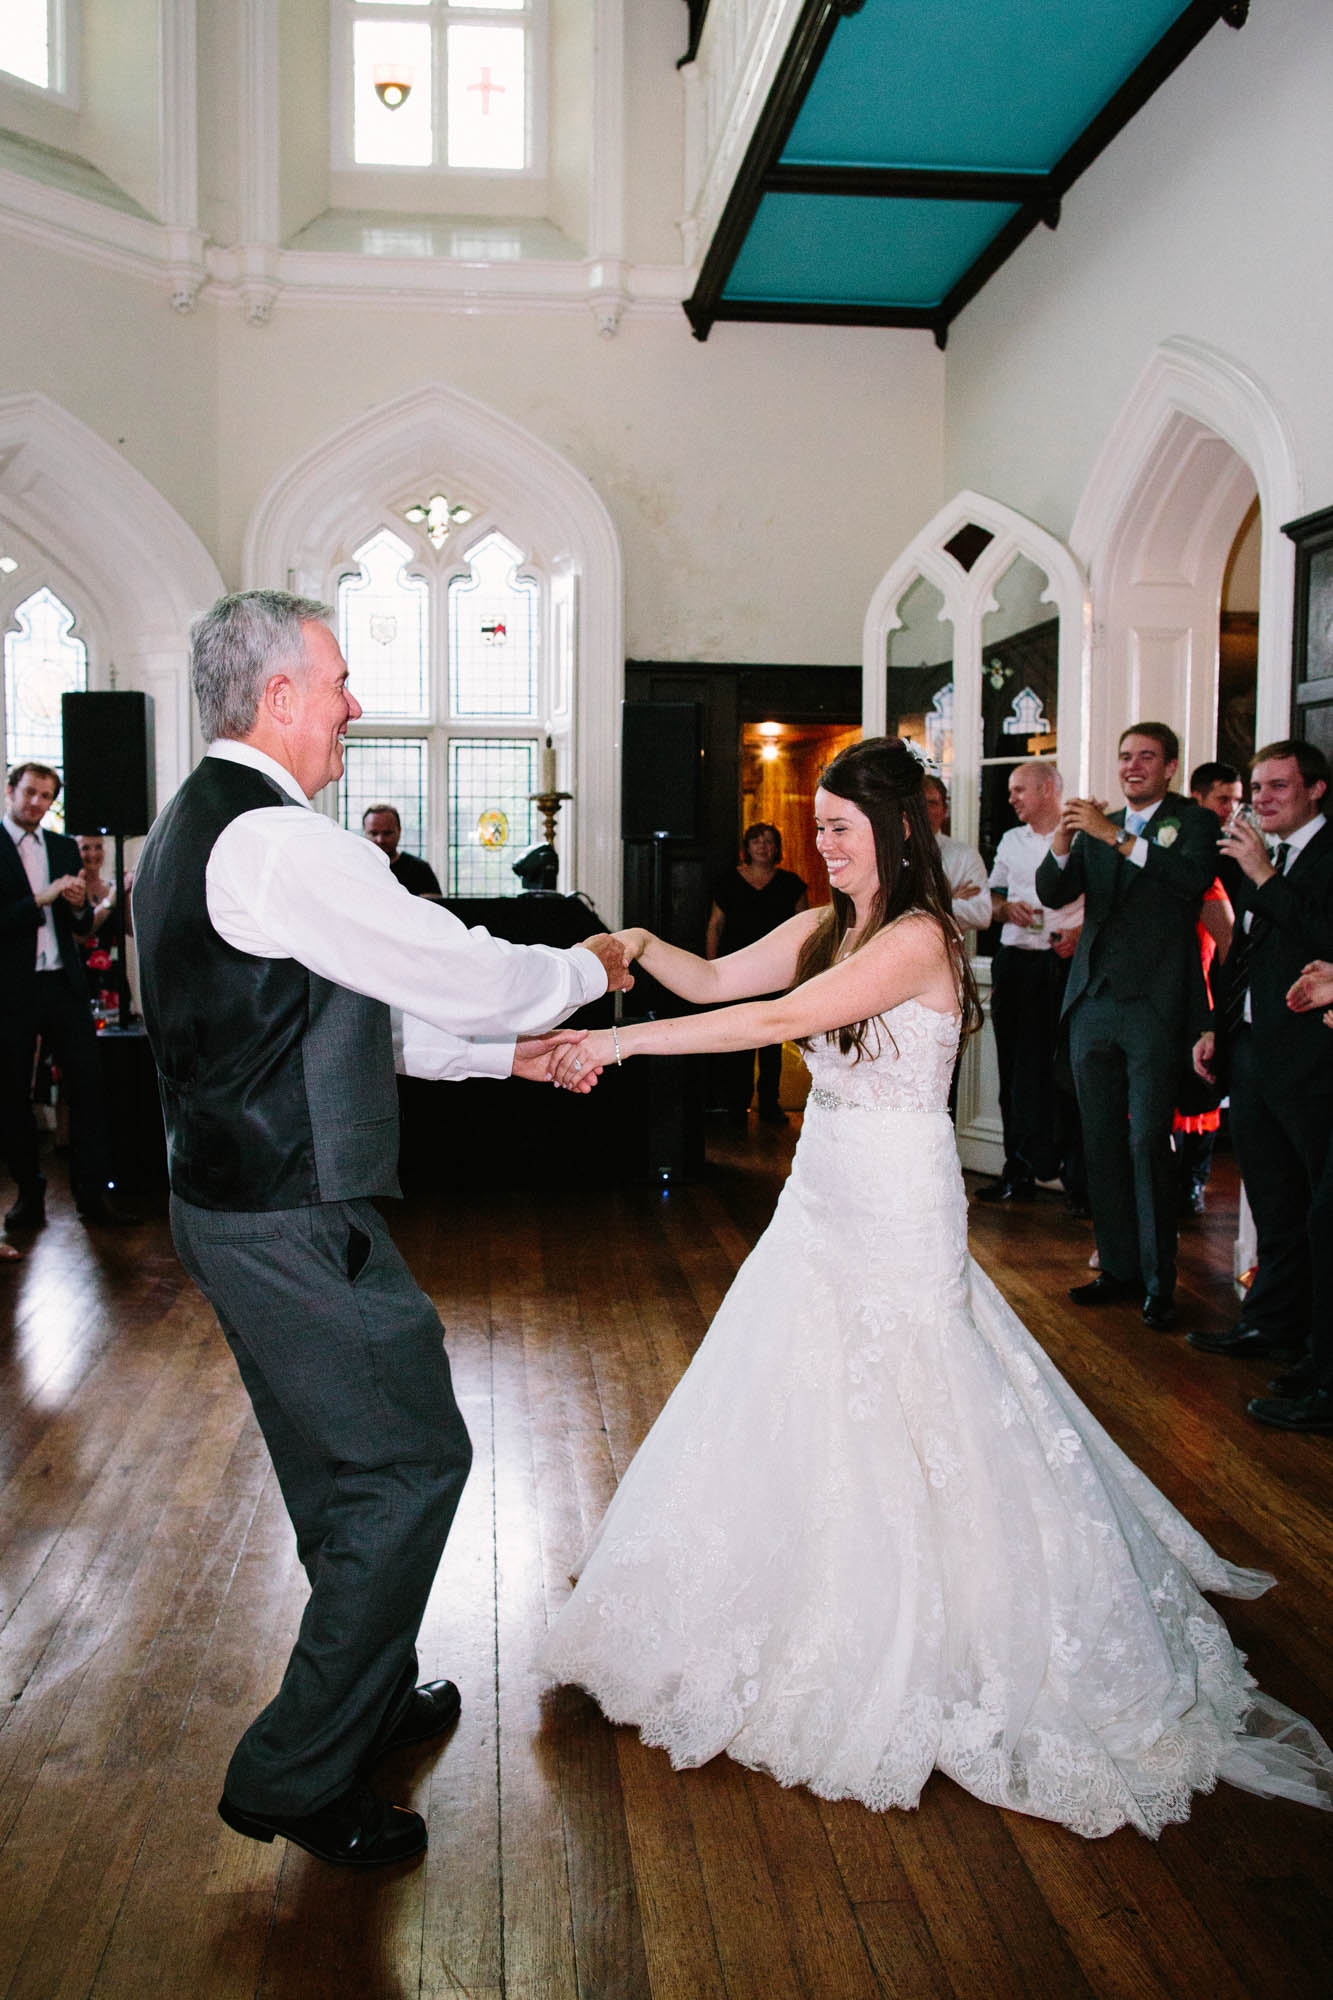 Bride dancing with her farther at Chiddingstone Castle wedding